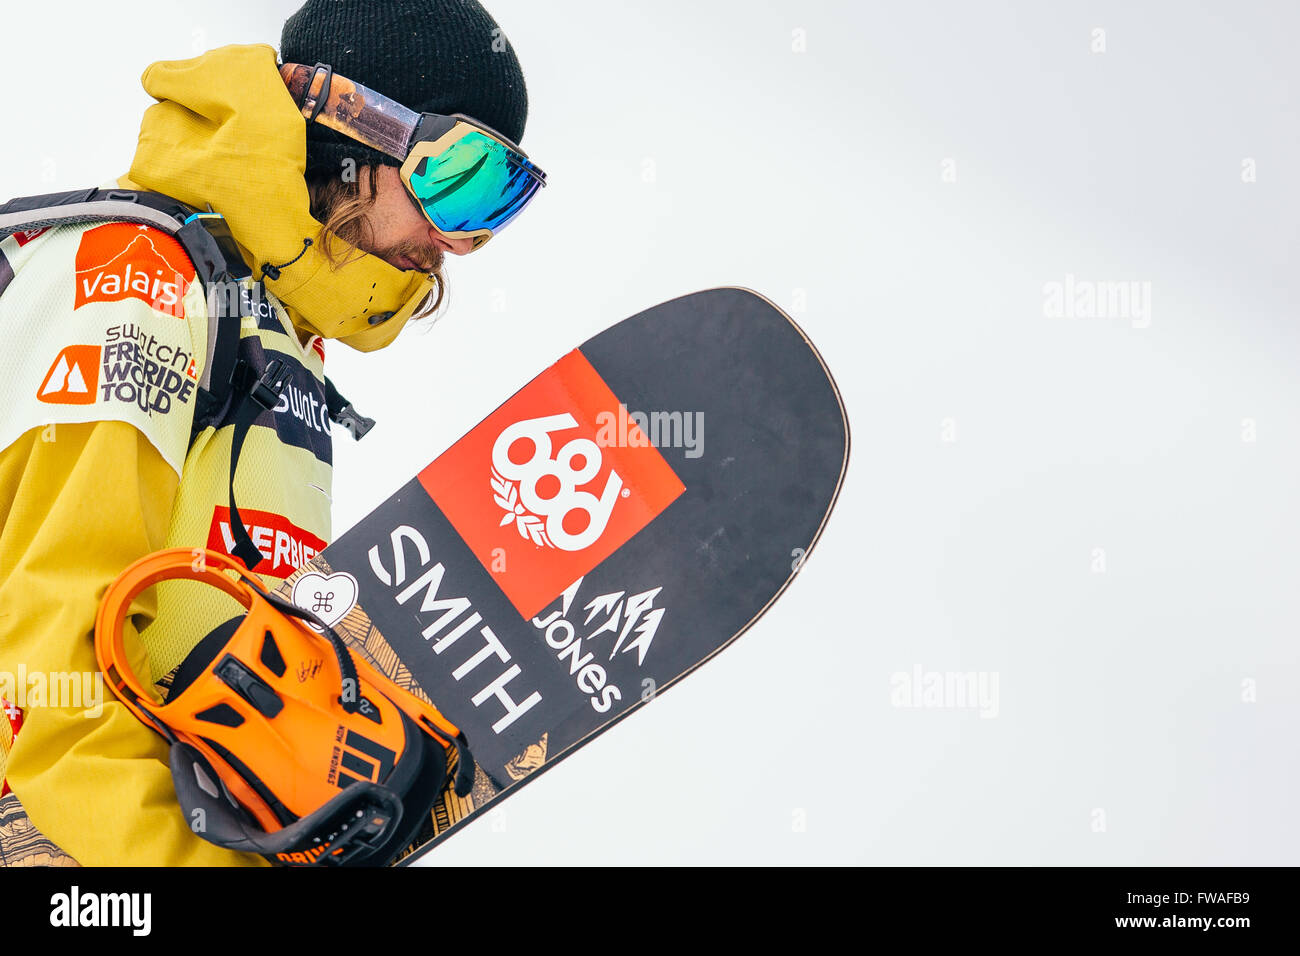 VERBIER, Switzerland: April, 2, 2016 Snowboard World Freeride Champion Sammy Luebke of the USA. - Stock Image